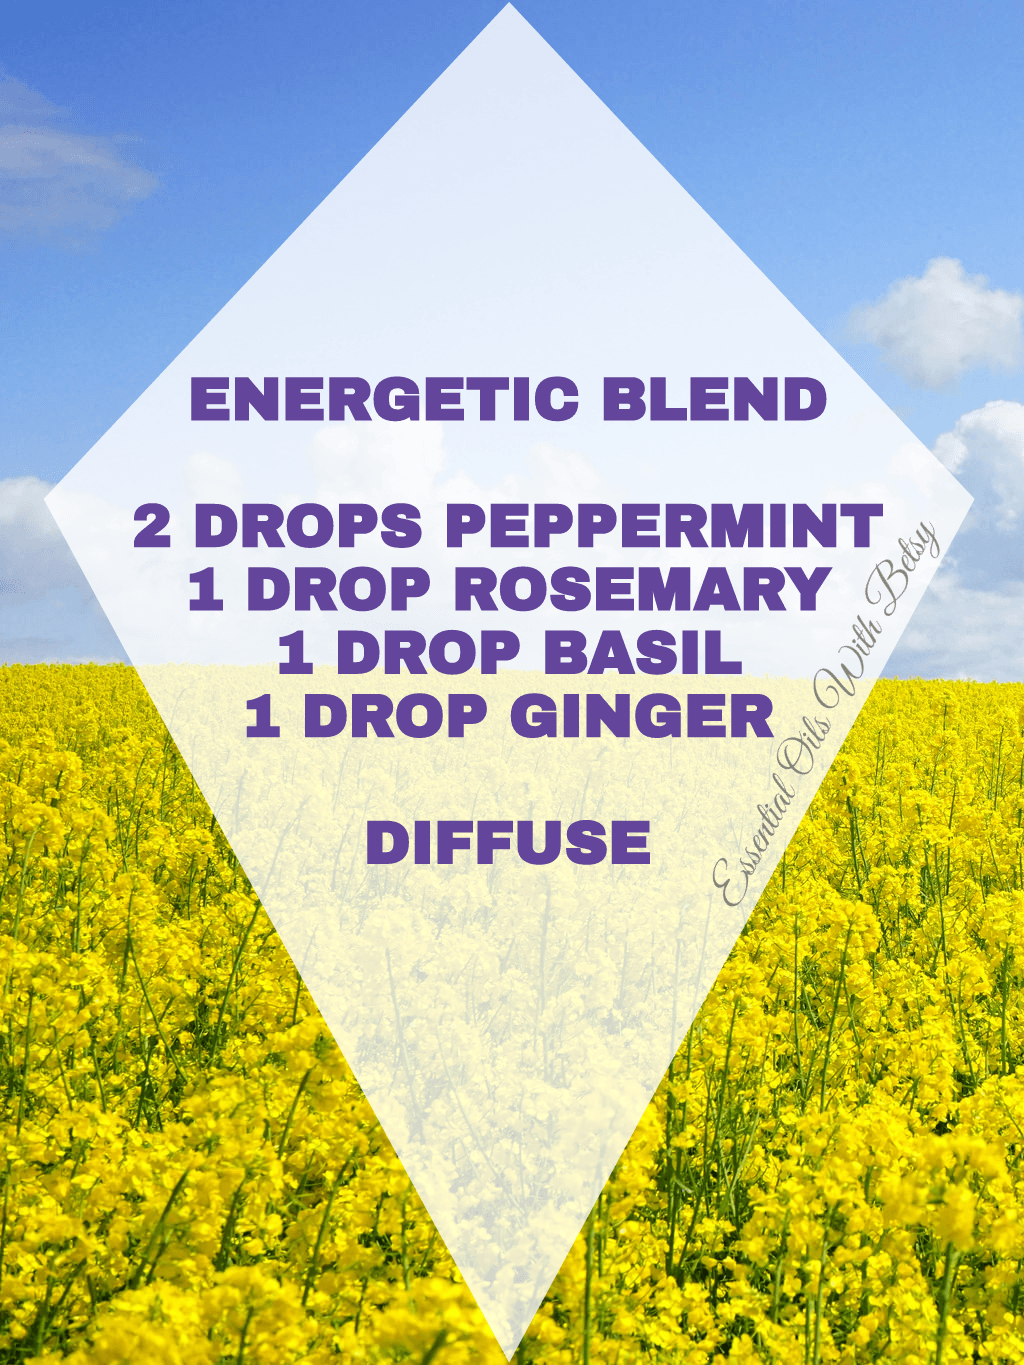 15 BRAND NEW DIFFUSER BLENDS: ENERGETIC BLEND 2 DROPS PEPPERMINT 1 DROP ROSEMARY 1 DROP BASIL 1 DROP GINGER